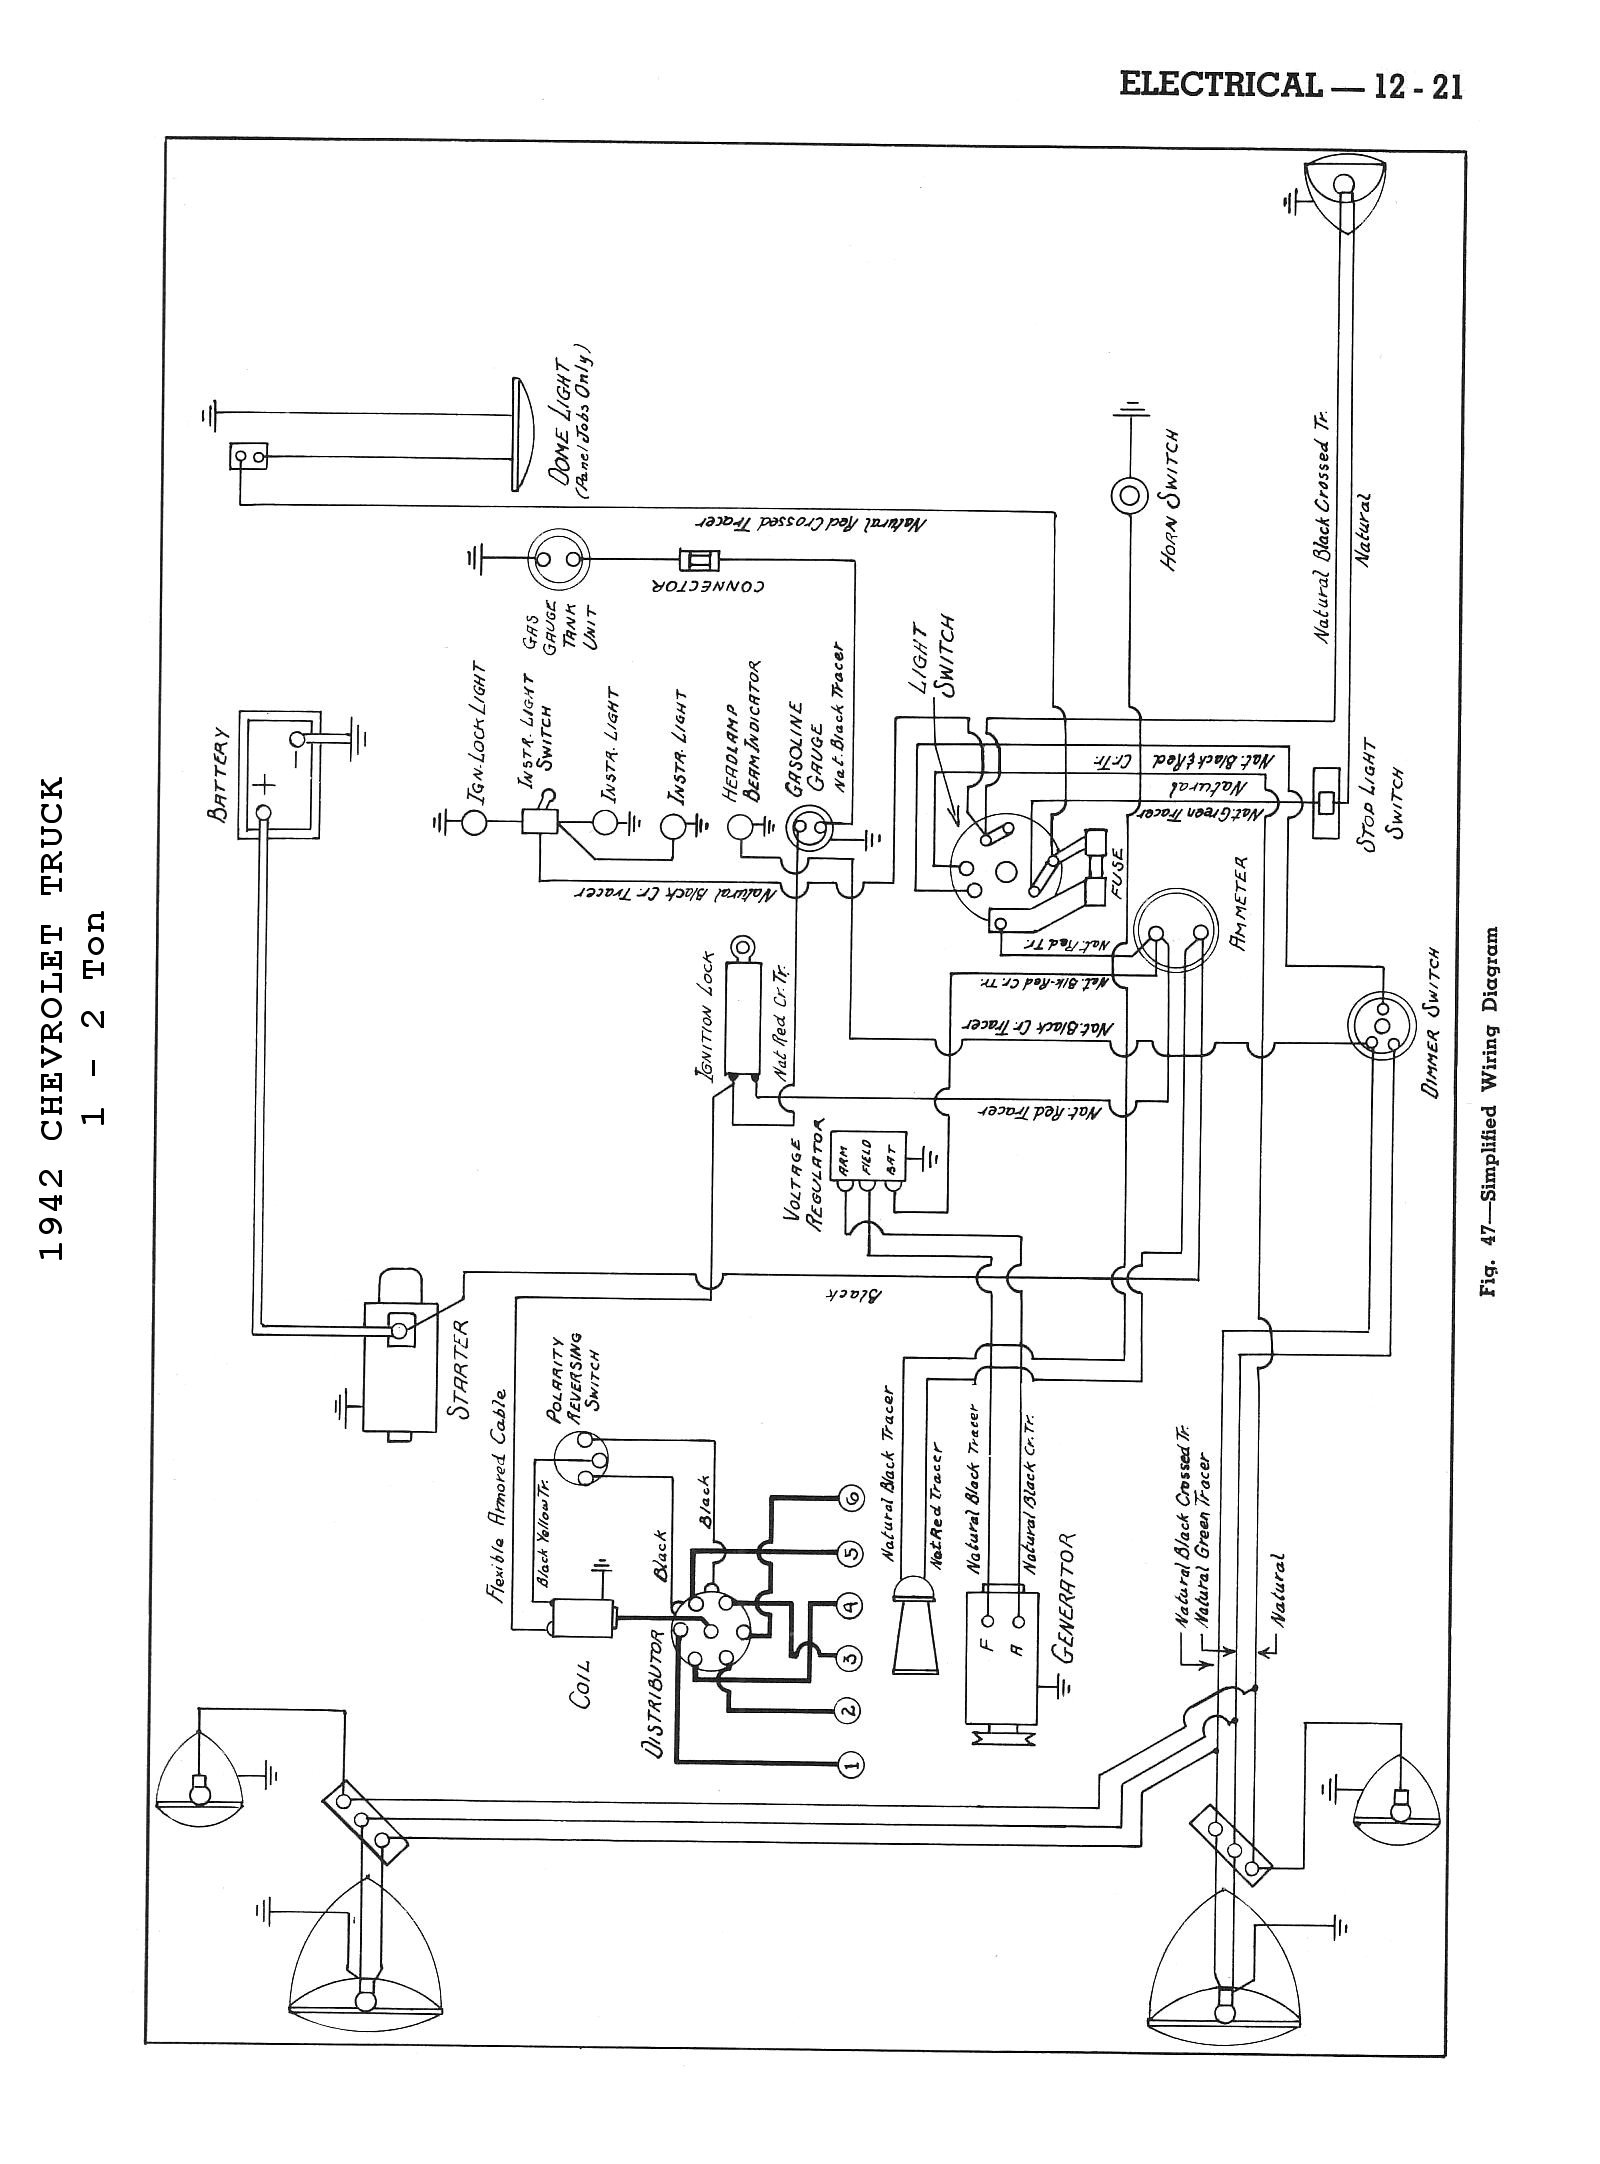 hight resolution of car diagrams 1961 cadillac wiring diagram 1967 plymouth